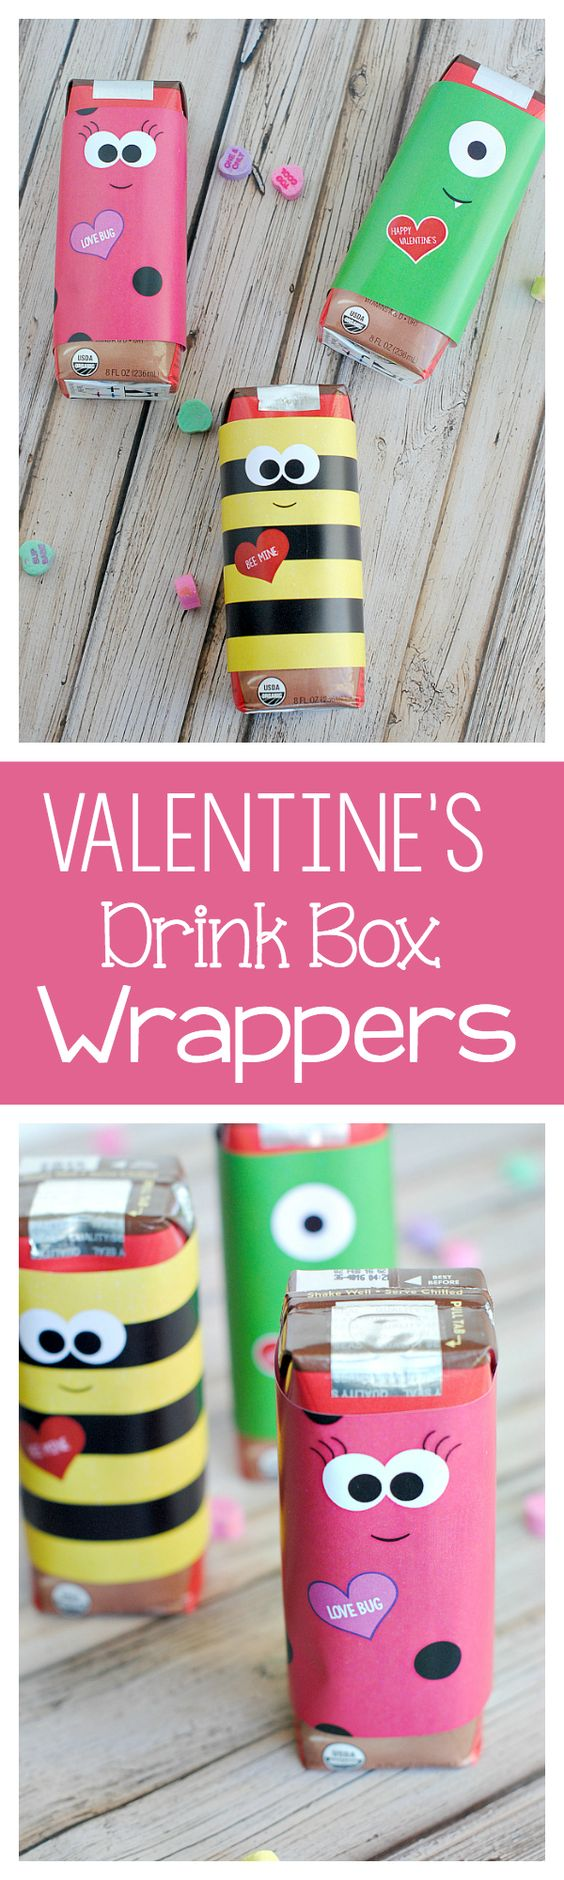 Cute Valentine's Day Party Drink Box Wrappers FREE PRINTABLES via Crazy Little Projects -Perfect for a party! Just print and wrap! #valentines #freeprintablevalentines #valentinesprintables #freevalentinesdaycards #valentinesdaypartyprintables #valentinesdayparty